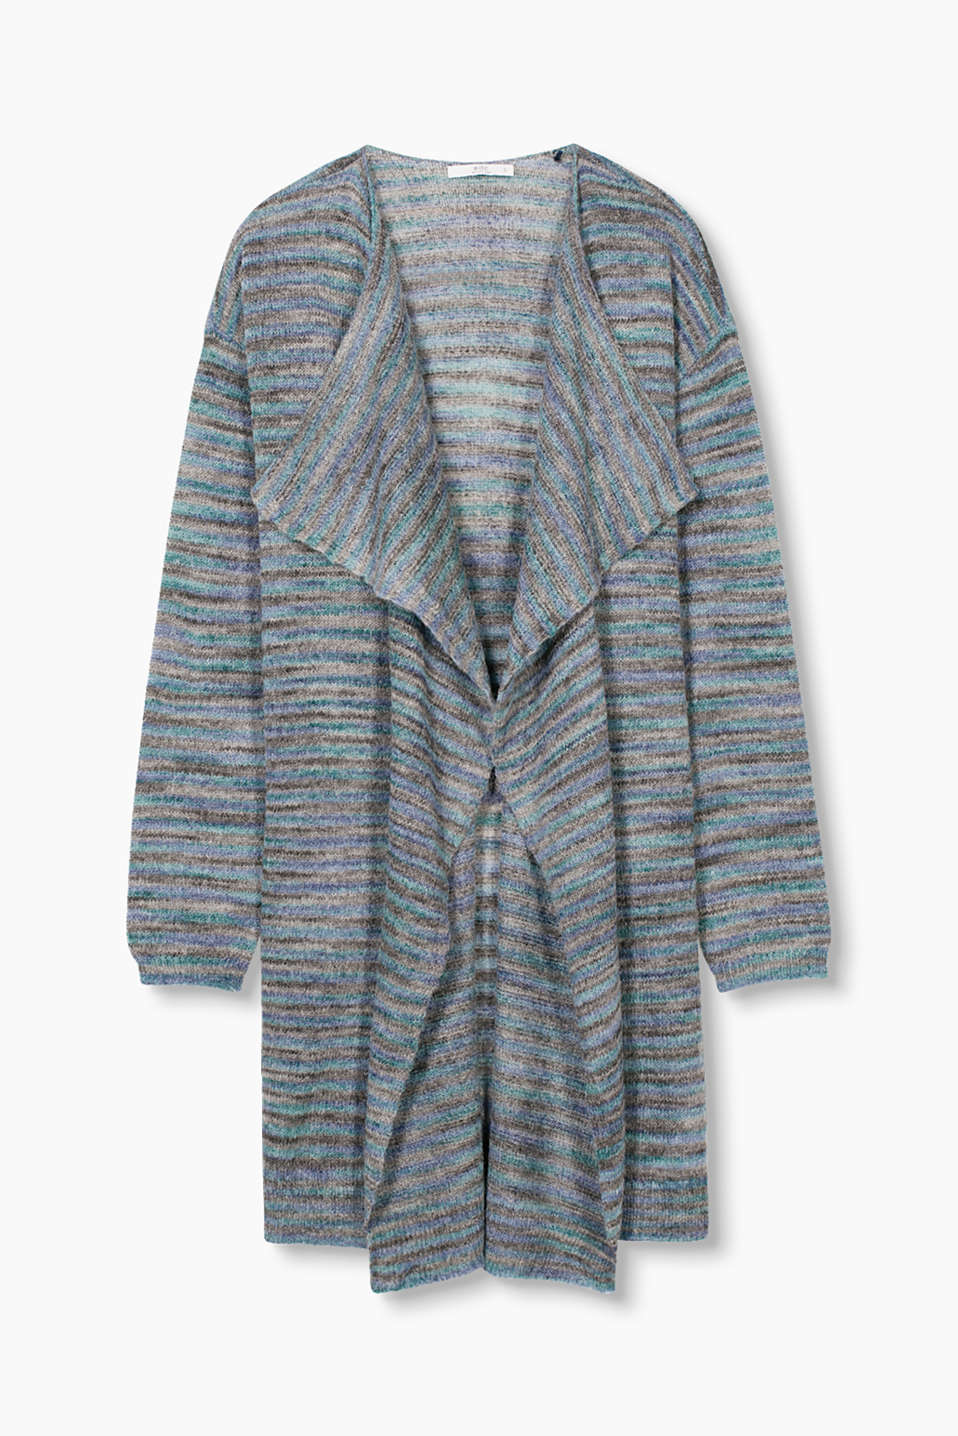 in a lightweight knit with stripes in a space-dyed look